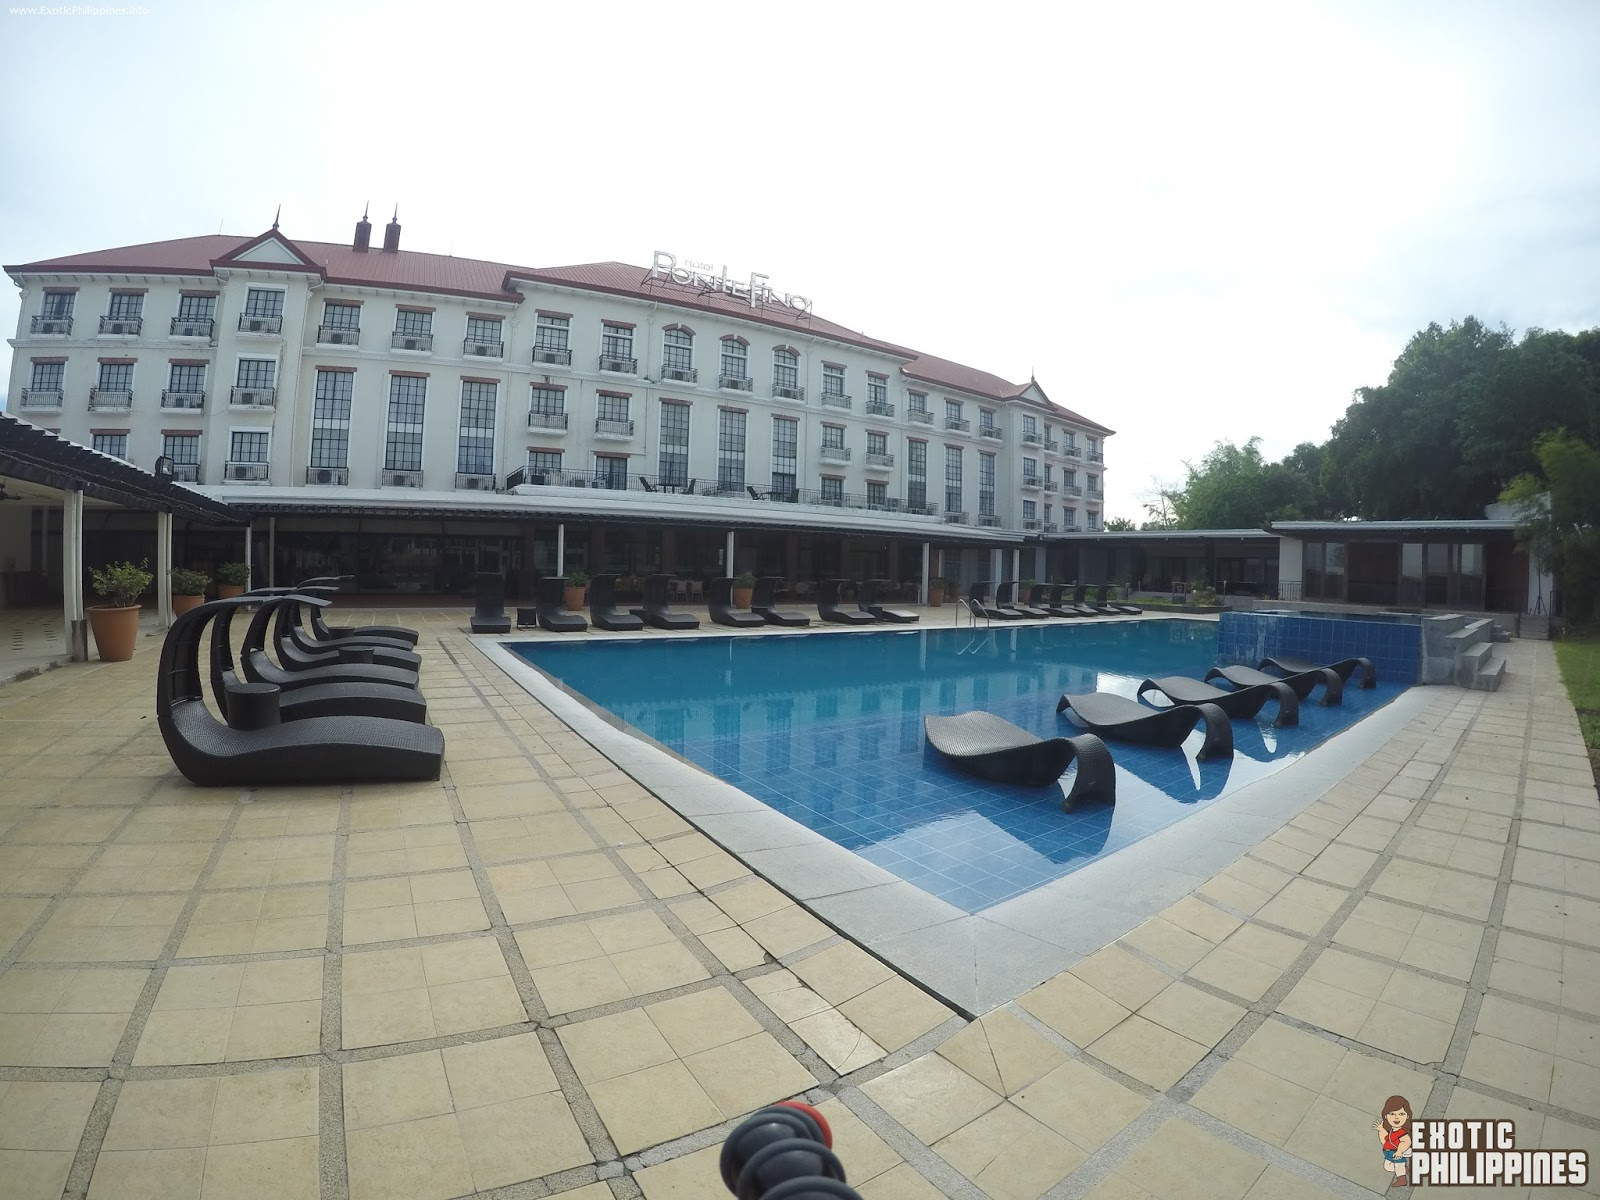 Ponte Fino Hotel Batangas City Hotel Review Exotic Philippines Travel Blogger Blog Vlogger Vlog